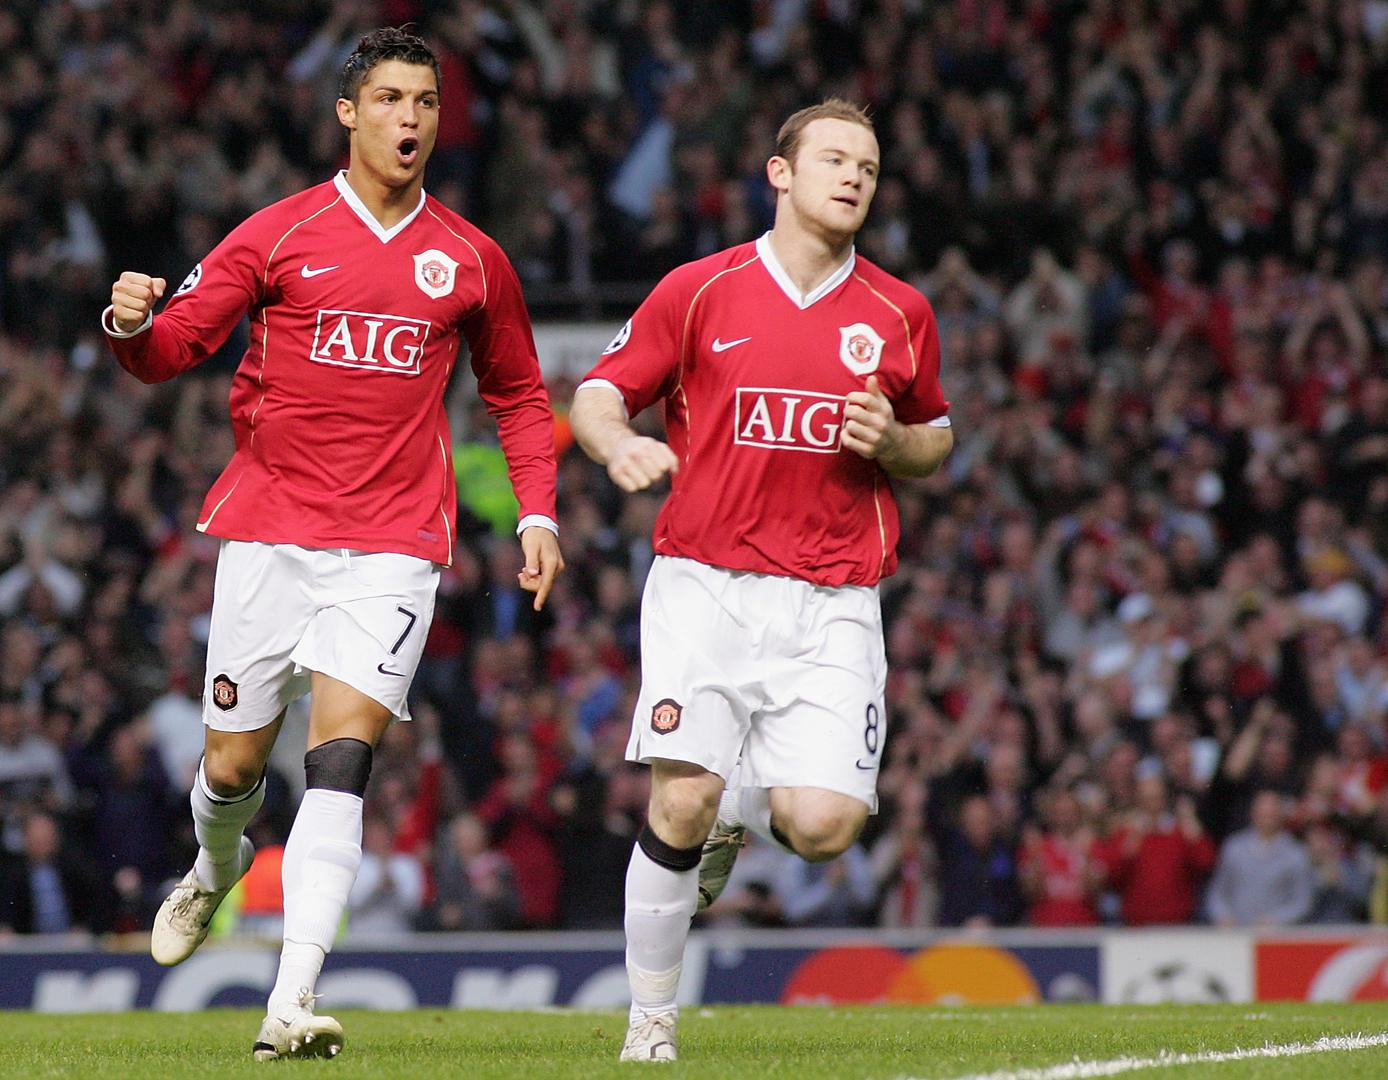 Cristiano Ronaldo and Wayne Rooney.